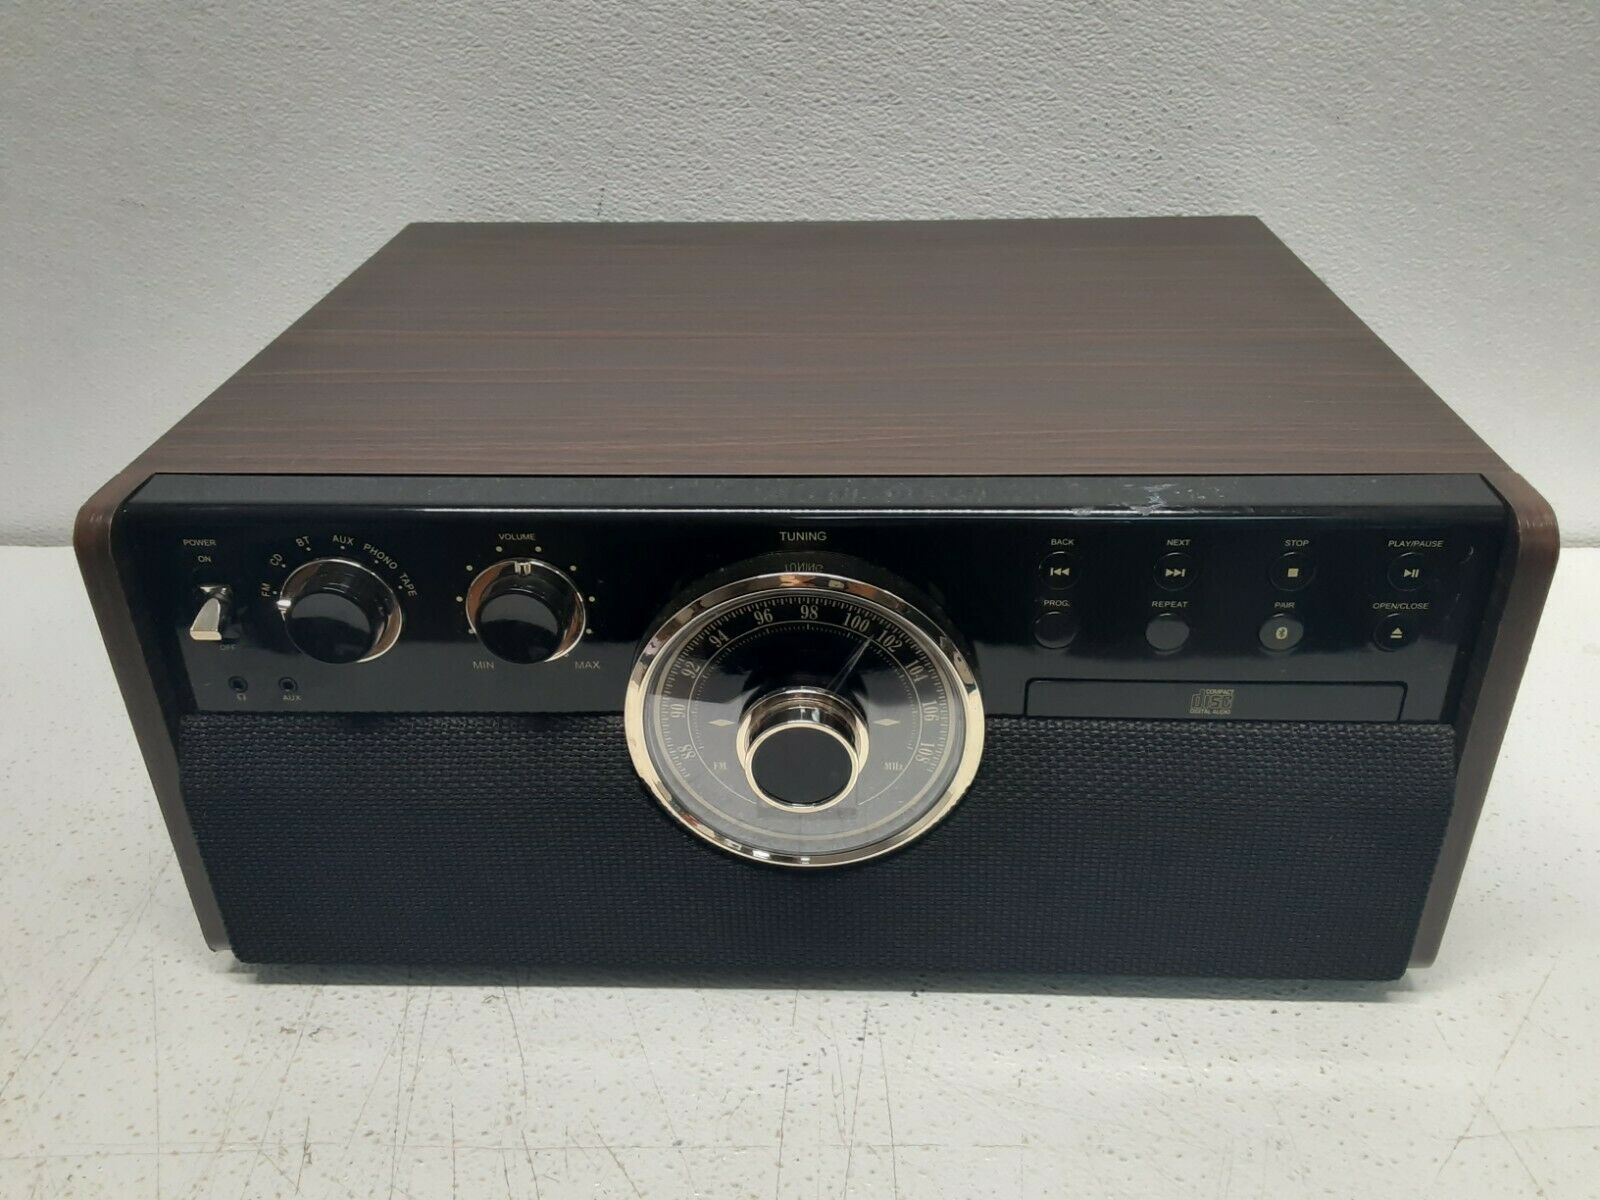 Victrola - Bluetooth Stereo Audio System - Gold/Brown/Black - New Open Box - $124.99